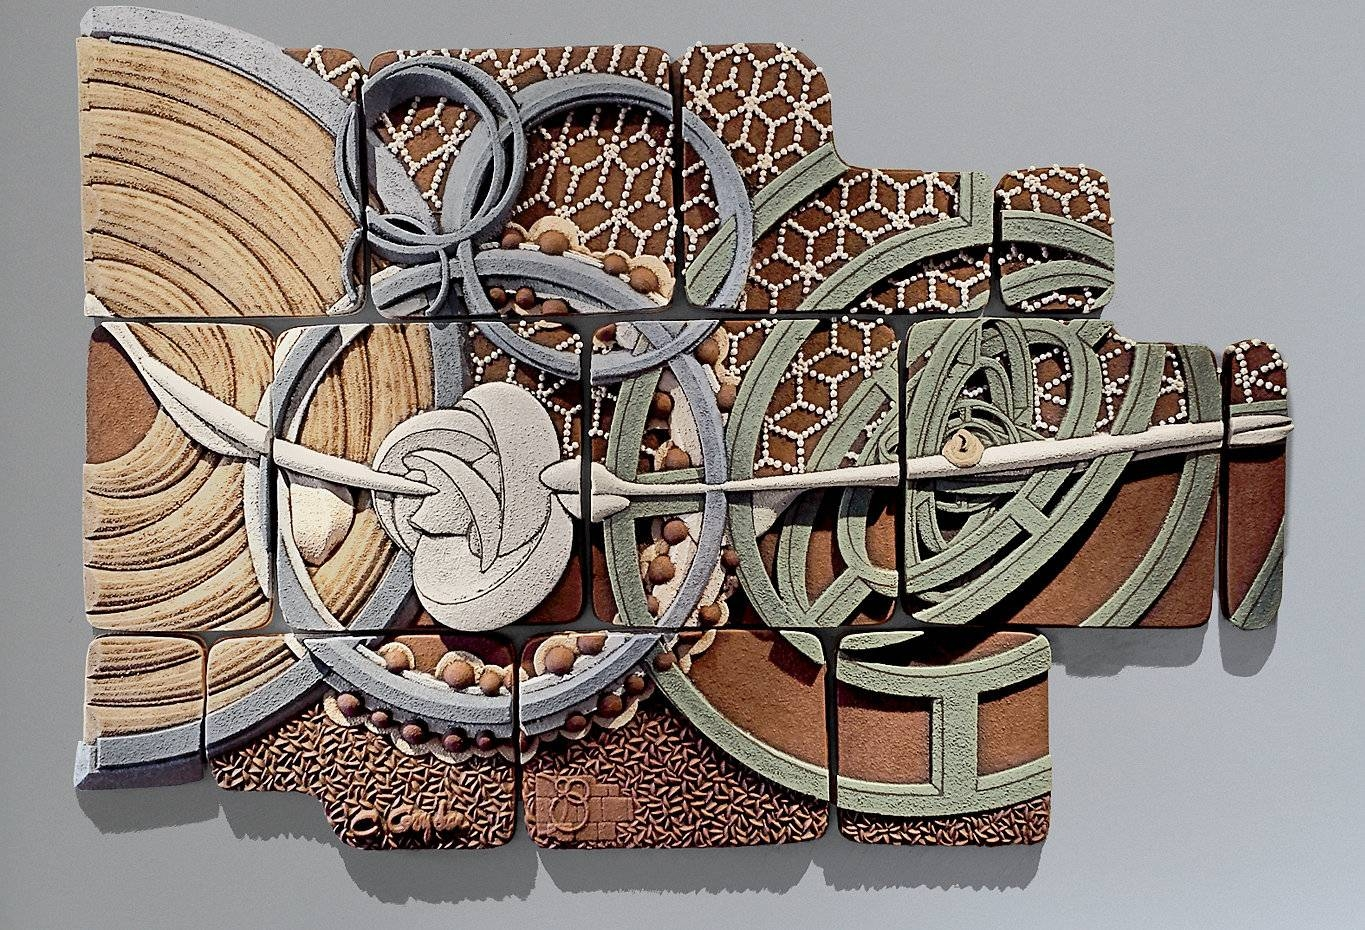 Equisymbrium No. 2christopher Gryder (ceramic Wall Sculpture In Most Recent Large Ceramic Wall Art (Gallery 2 of 25)